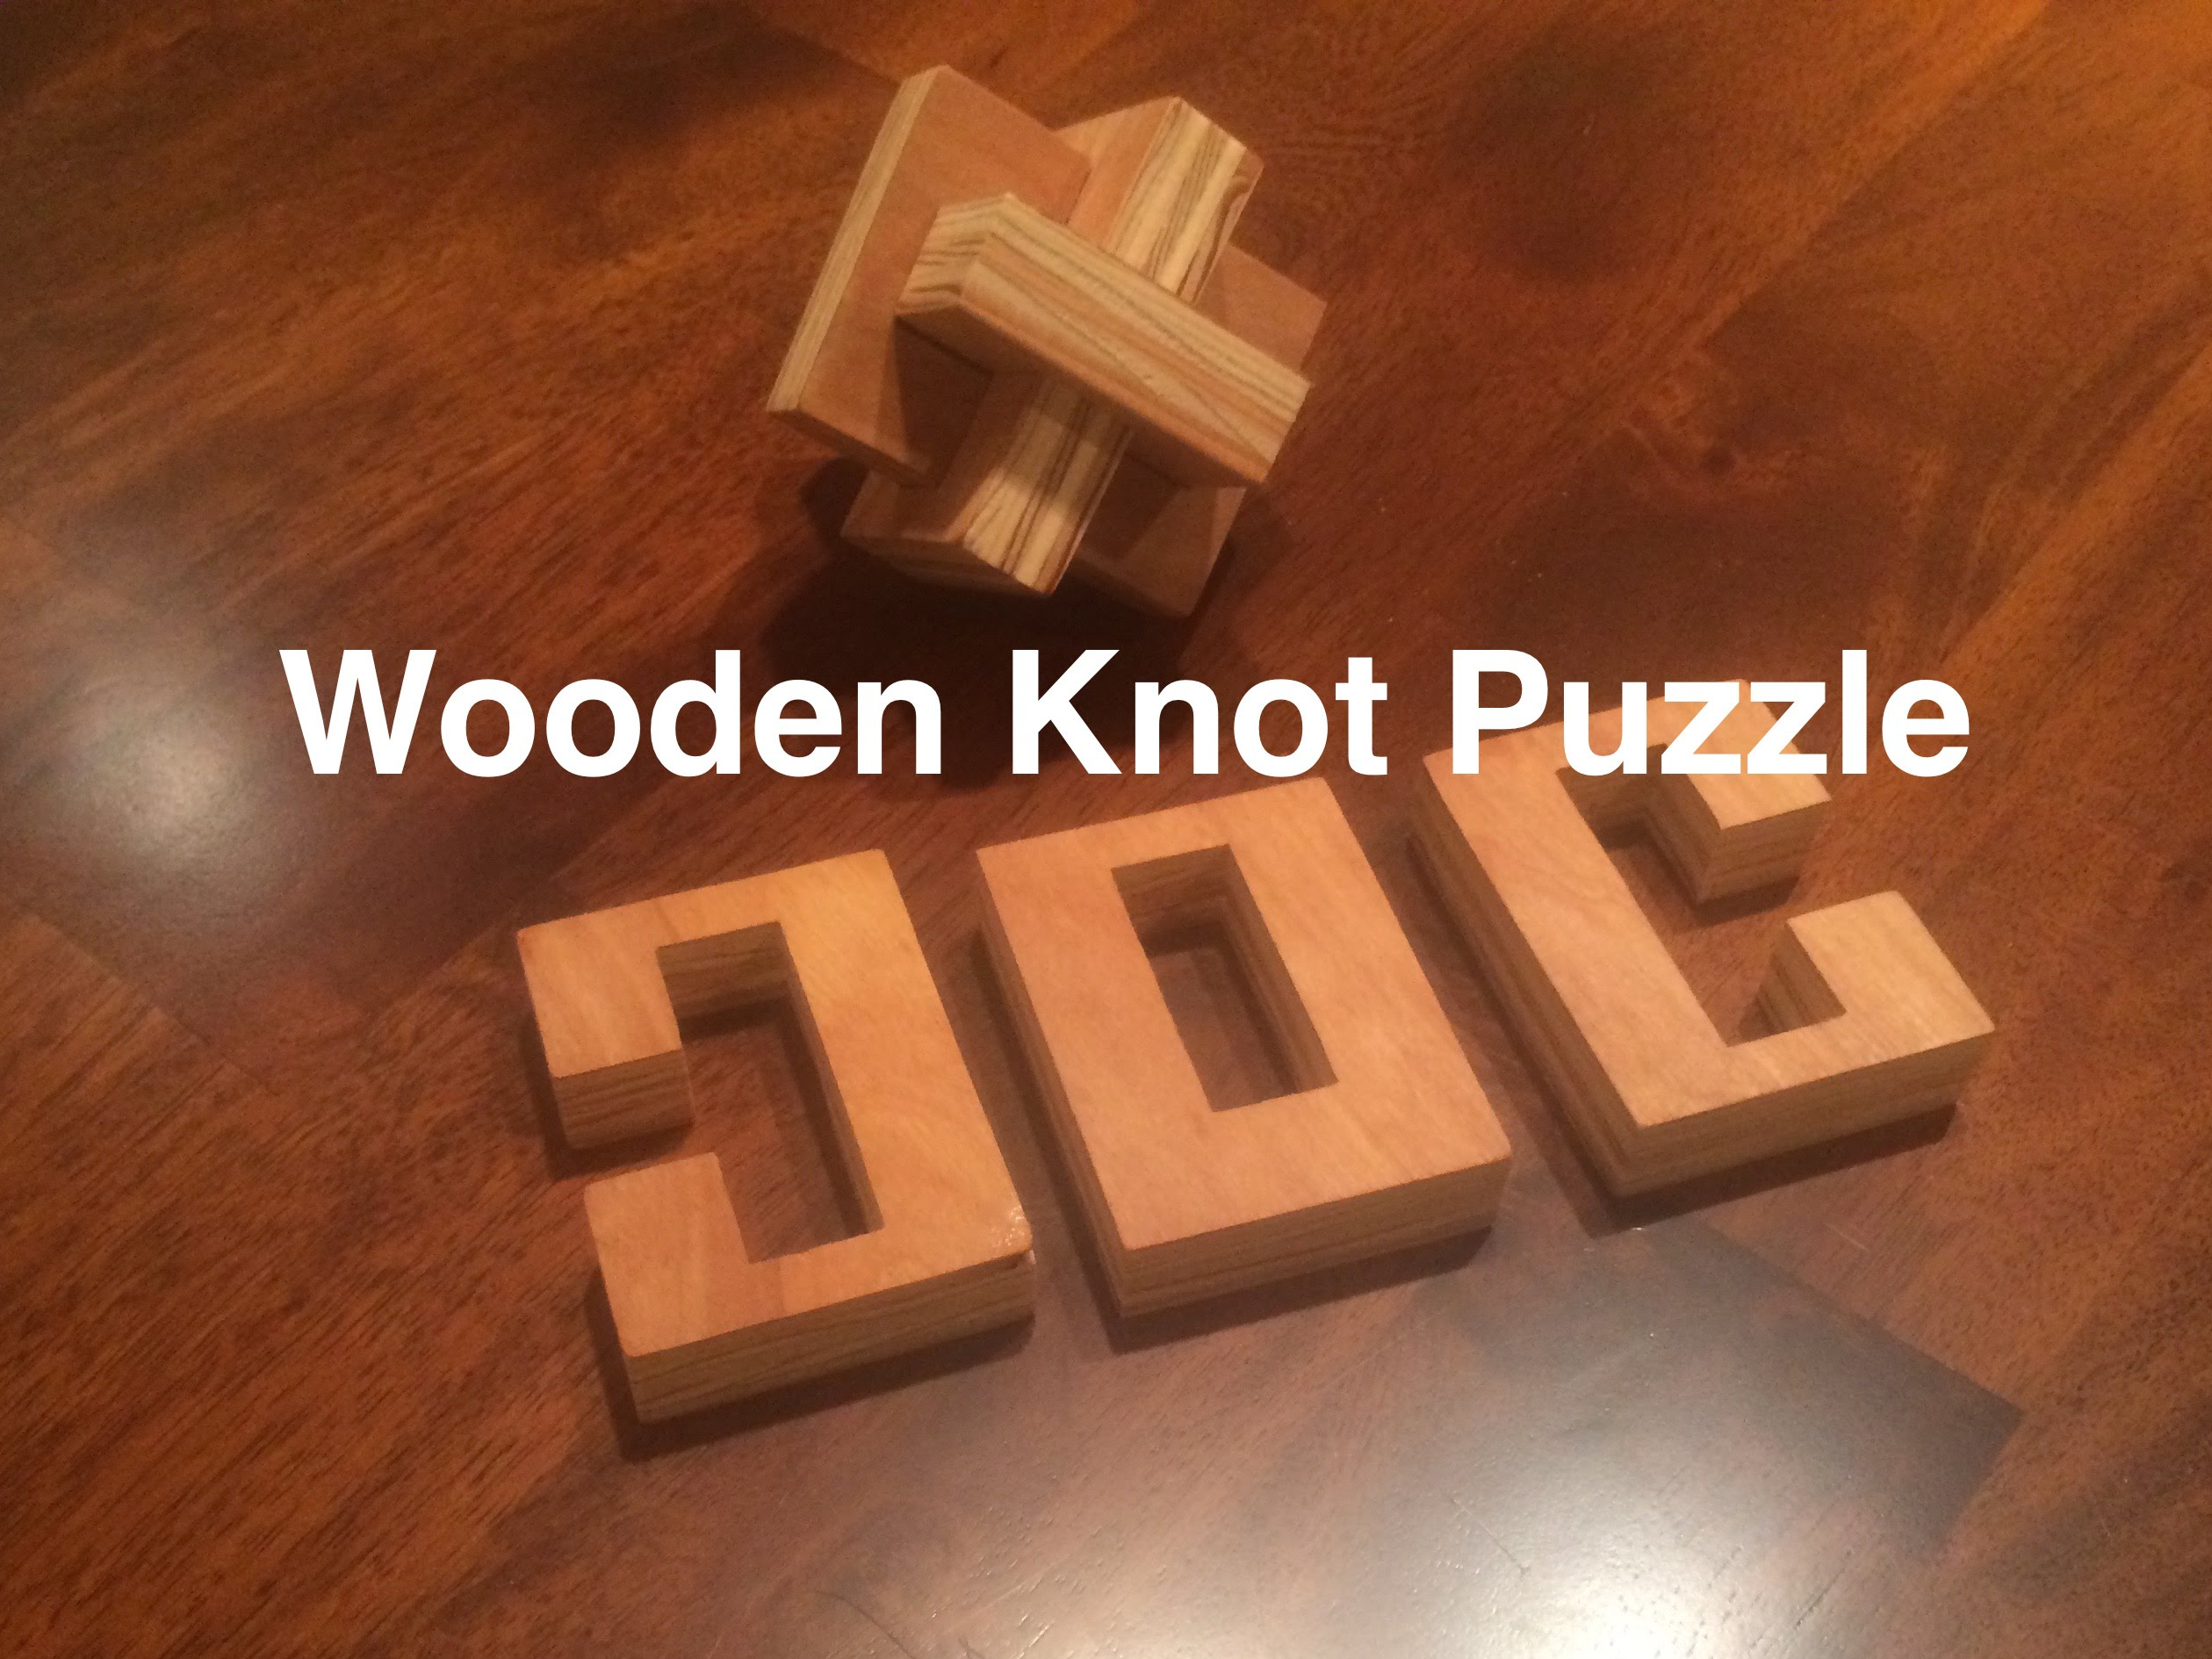 Wooden knot photo